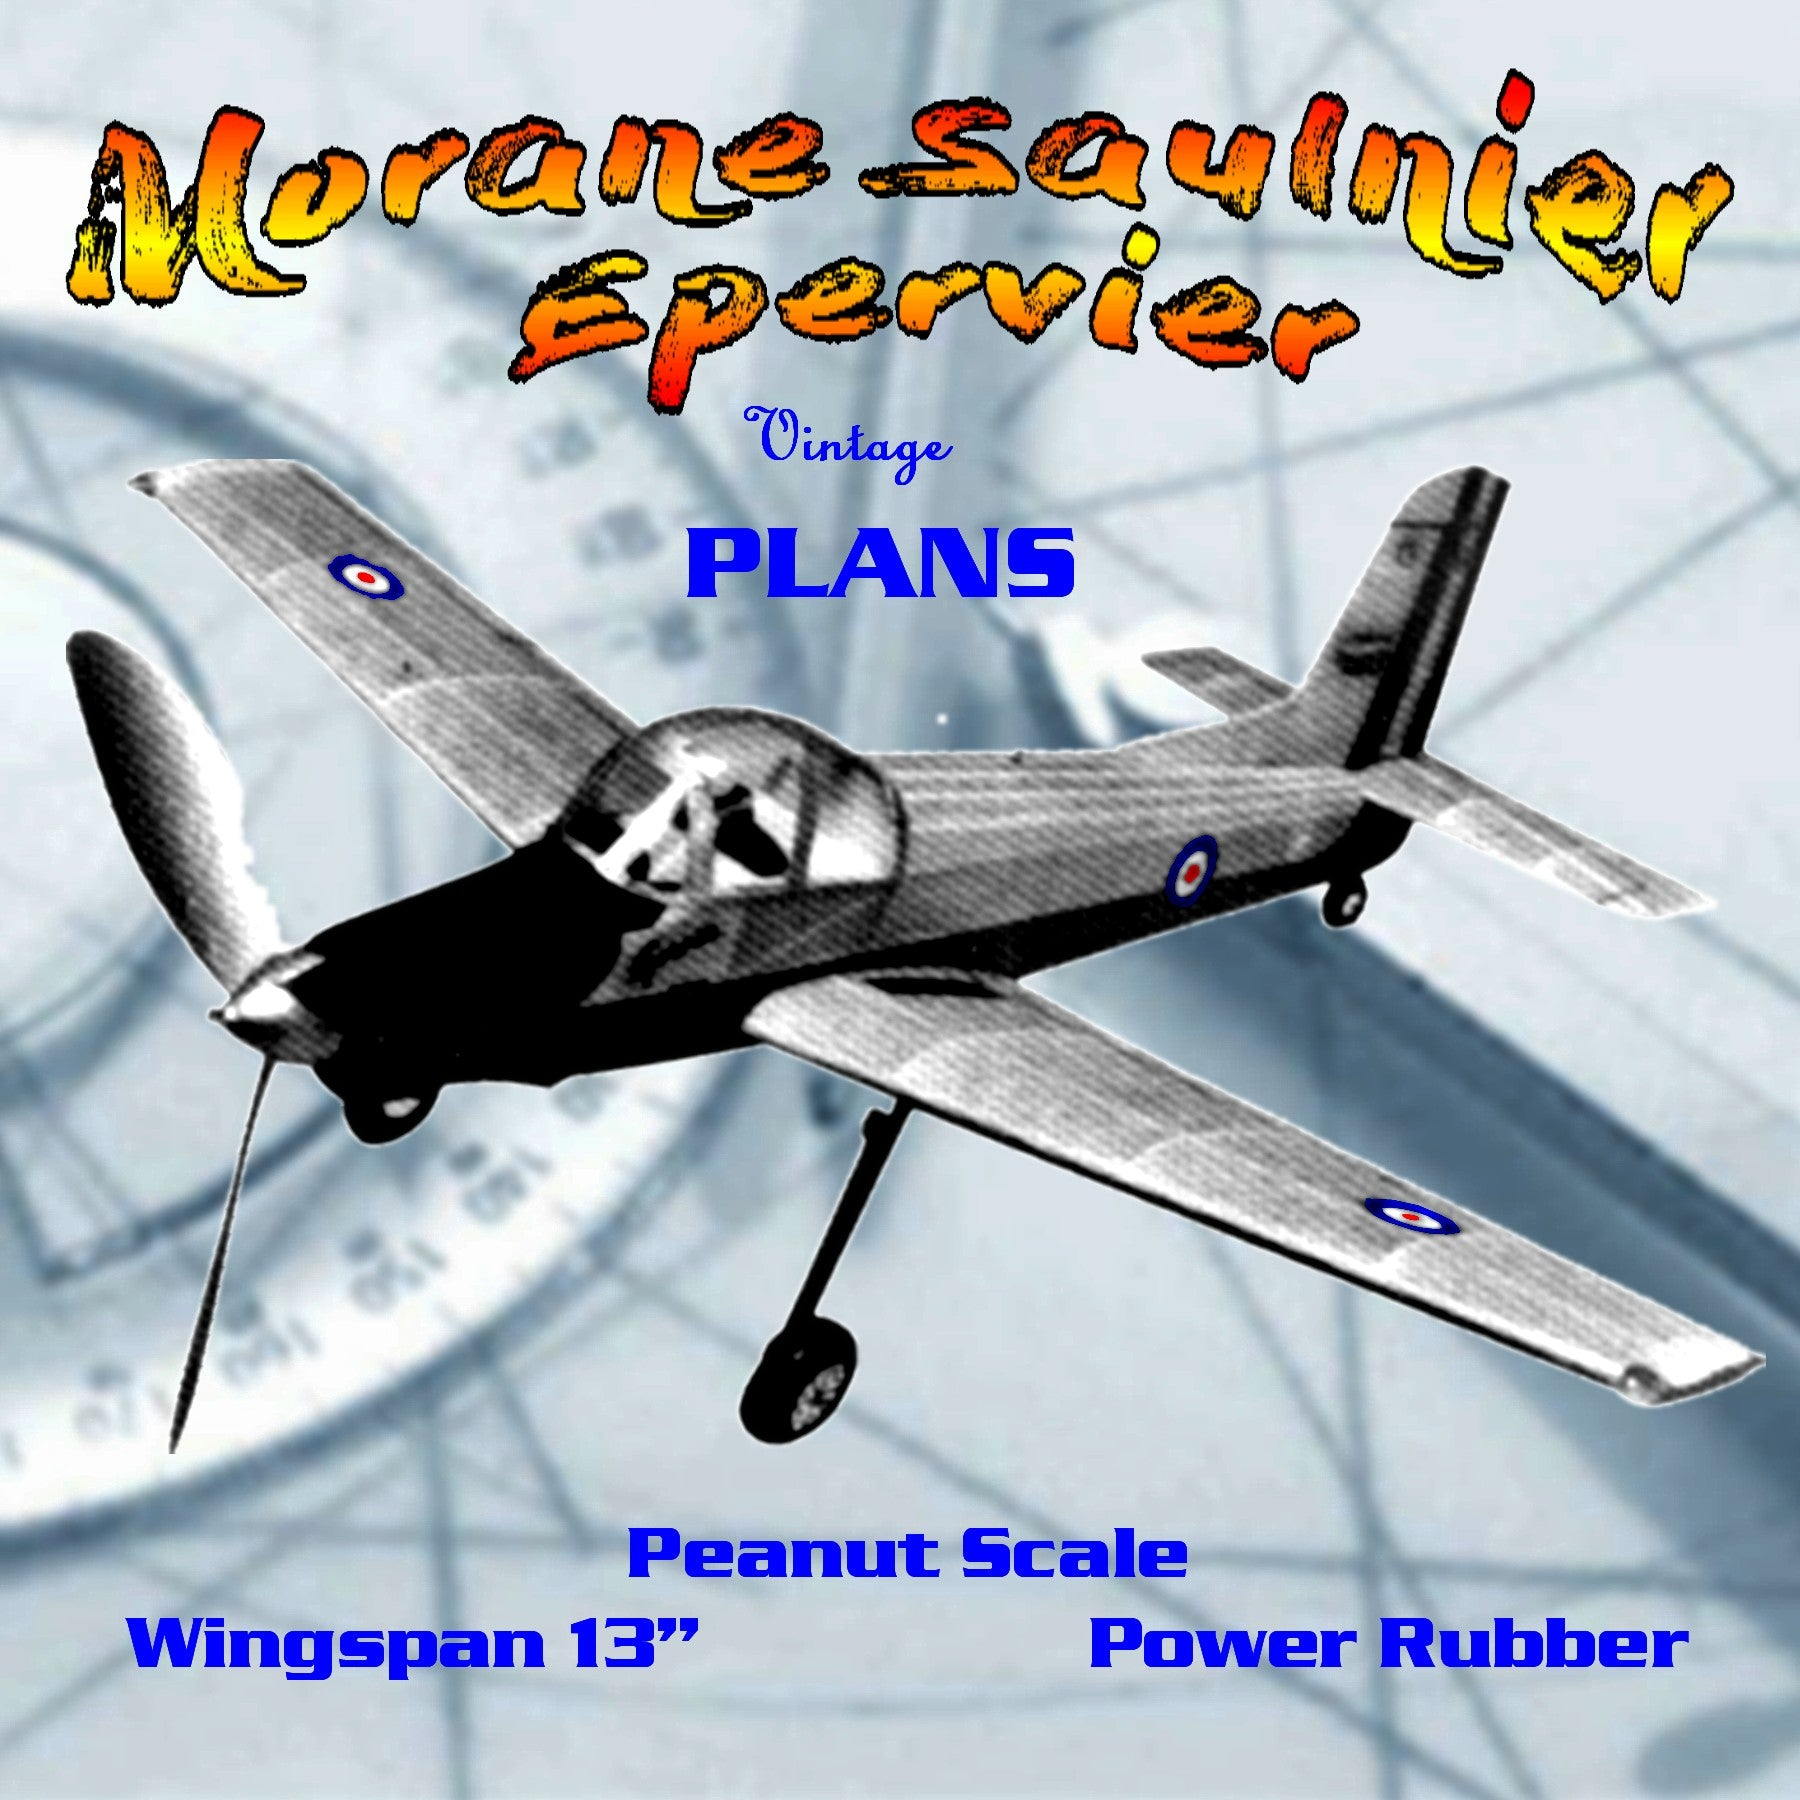 "Full size printed plans Peanut Scale ""Morane Saulnier Epervier""  airplane that just begs to be built."